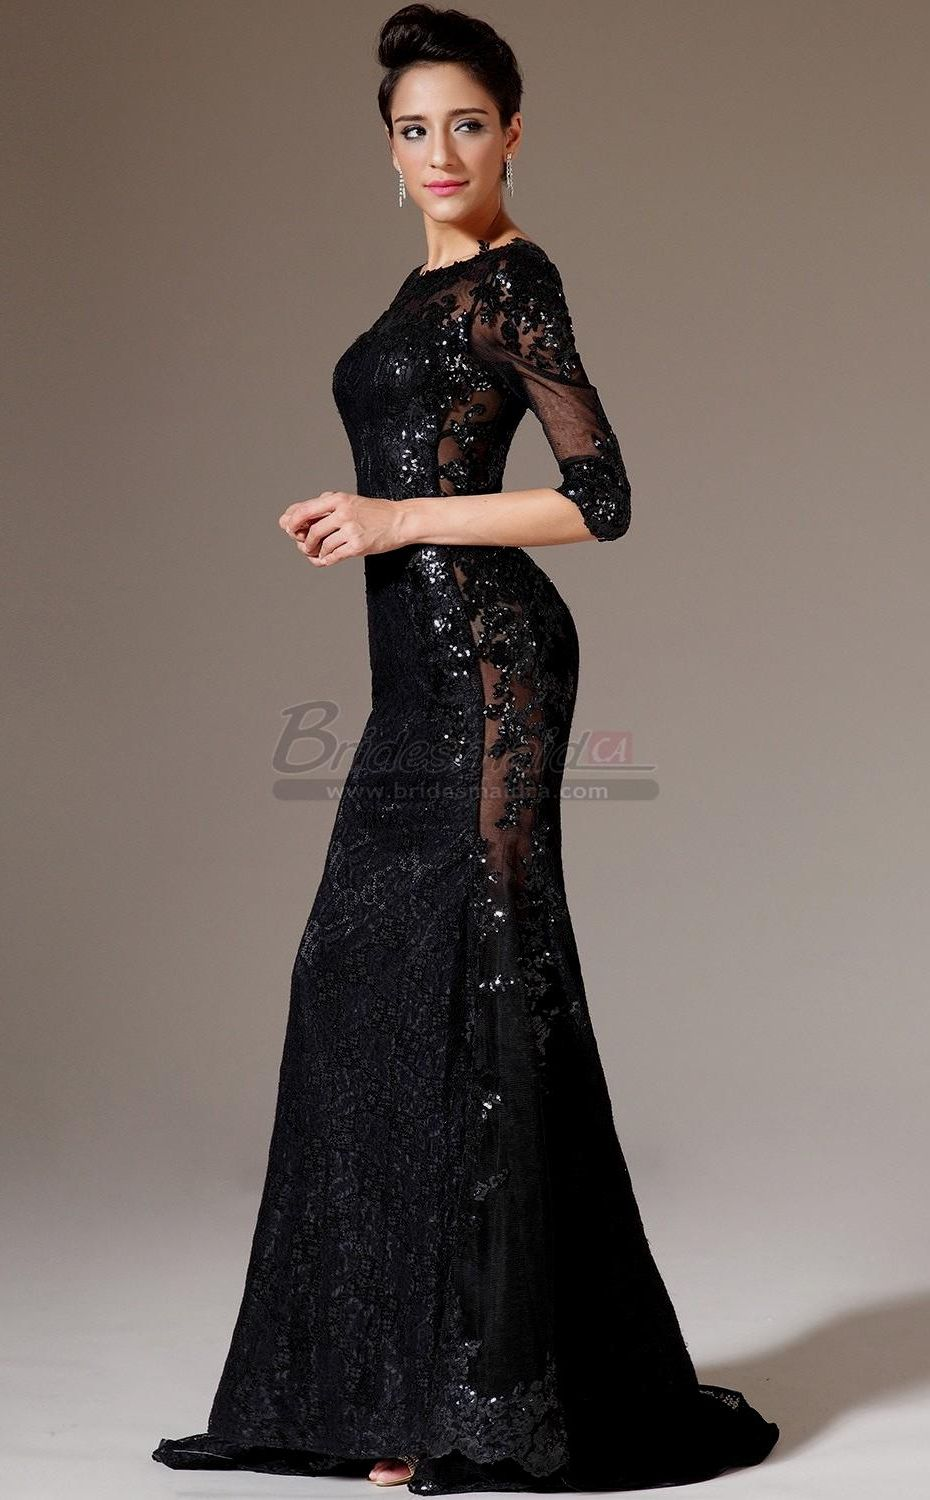 Black long sleeve lace bridesmaid dresses collection in